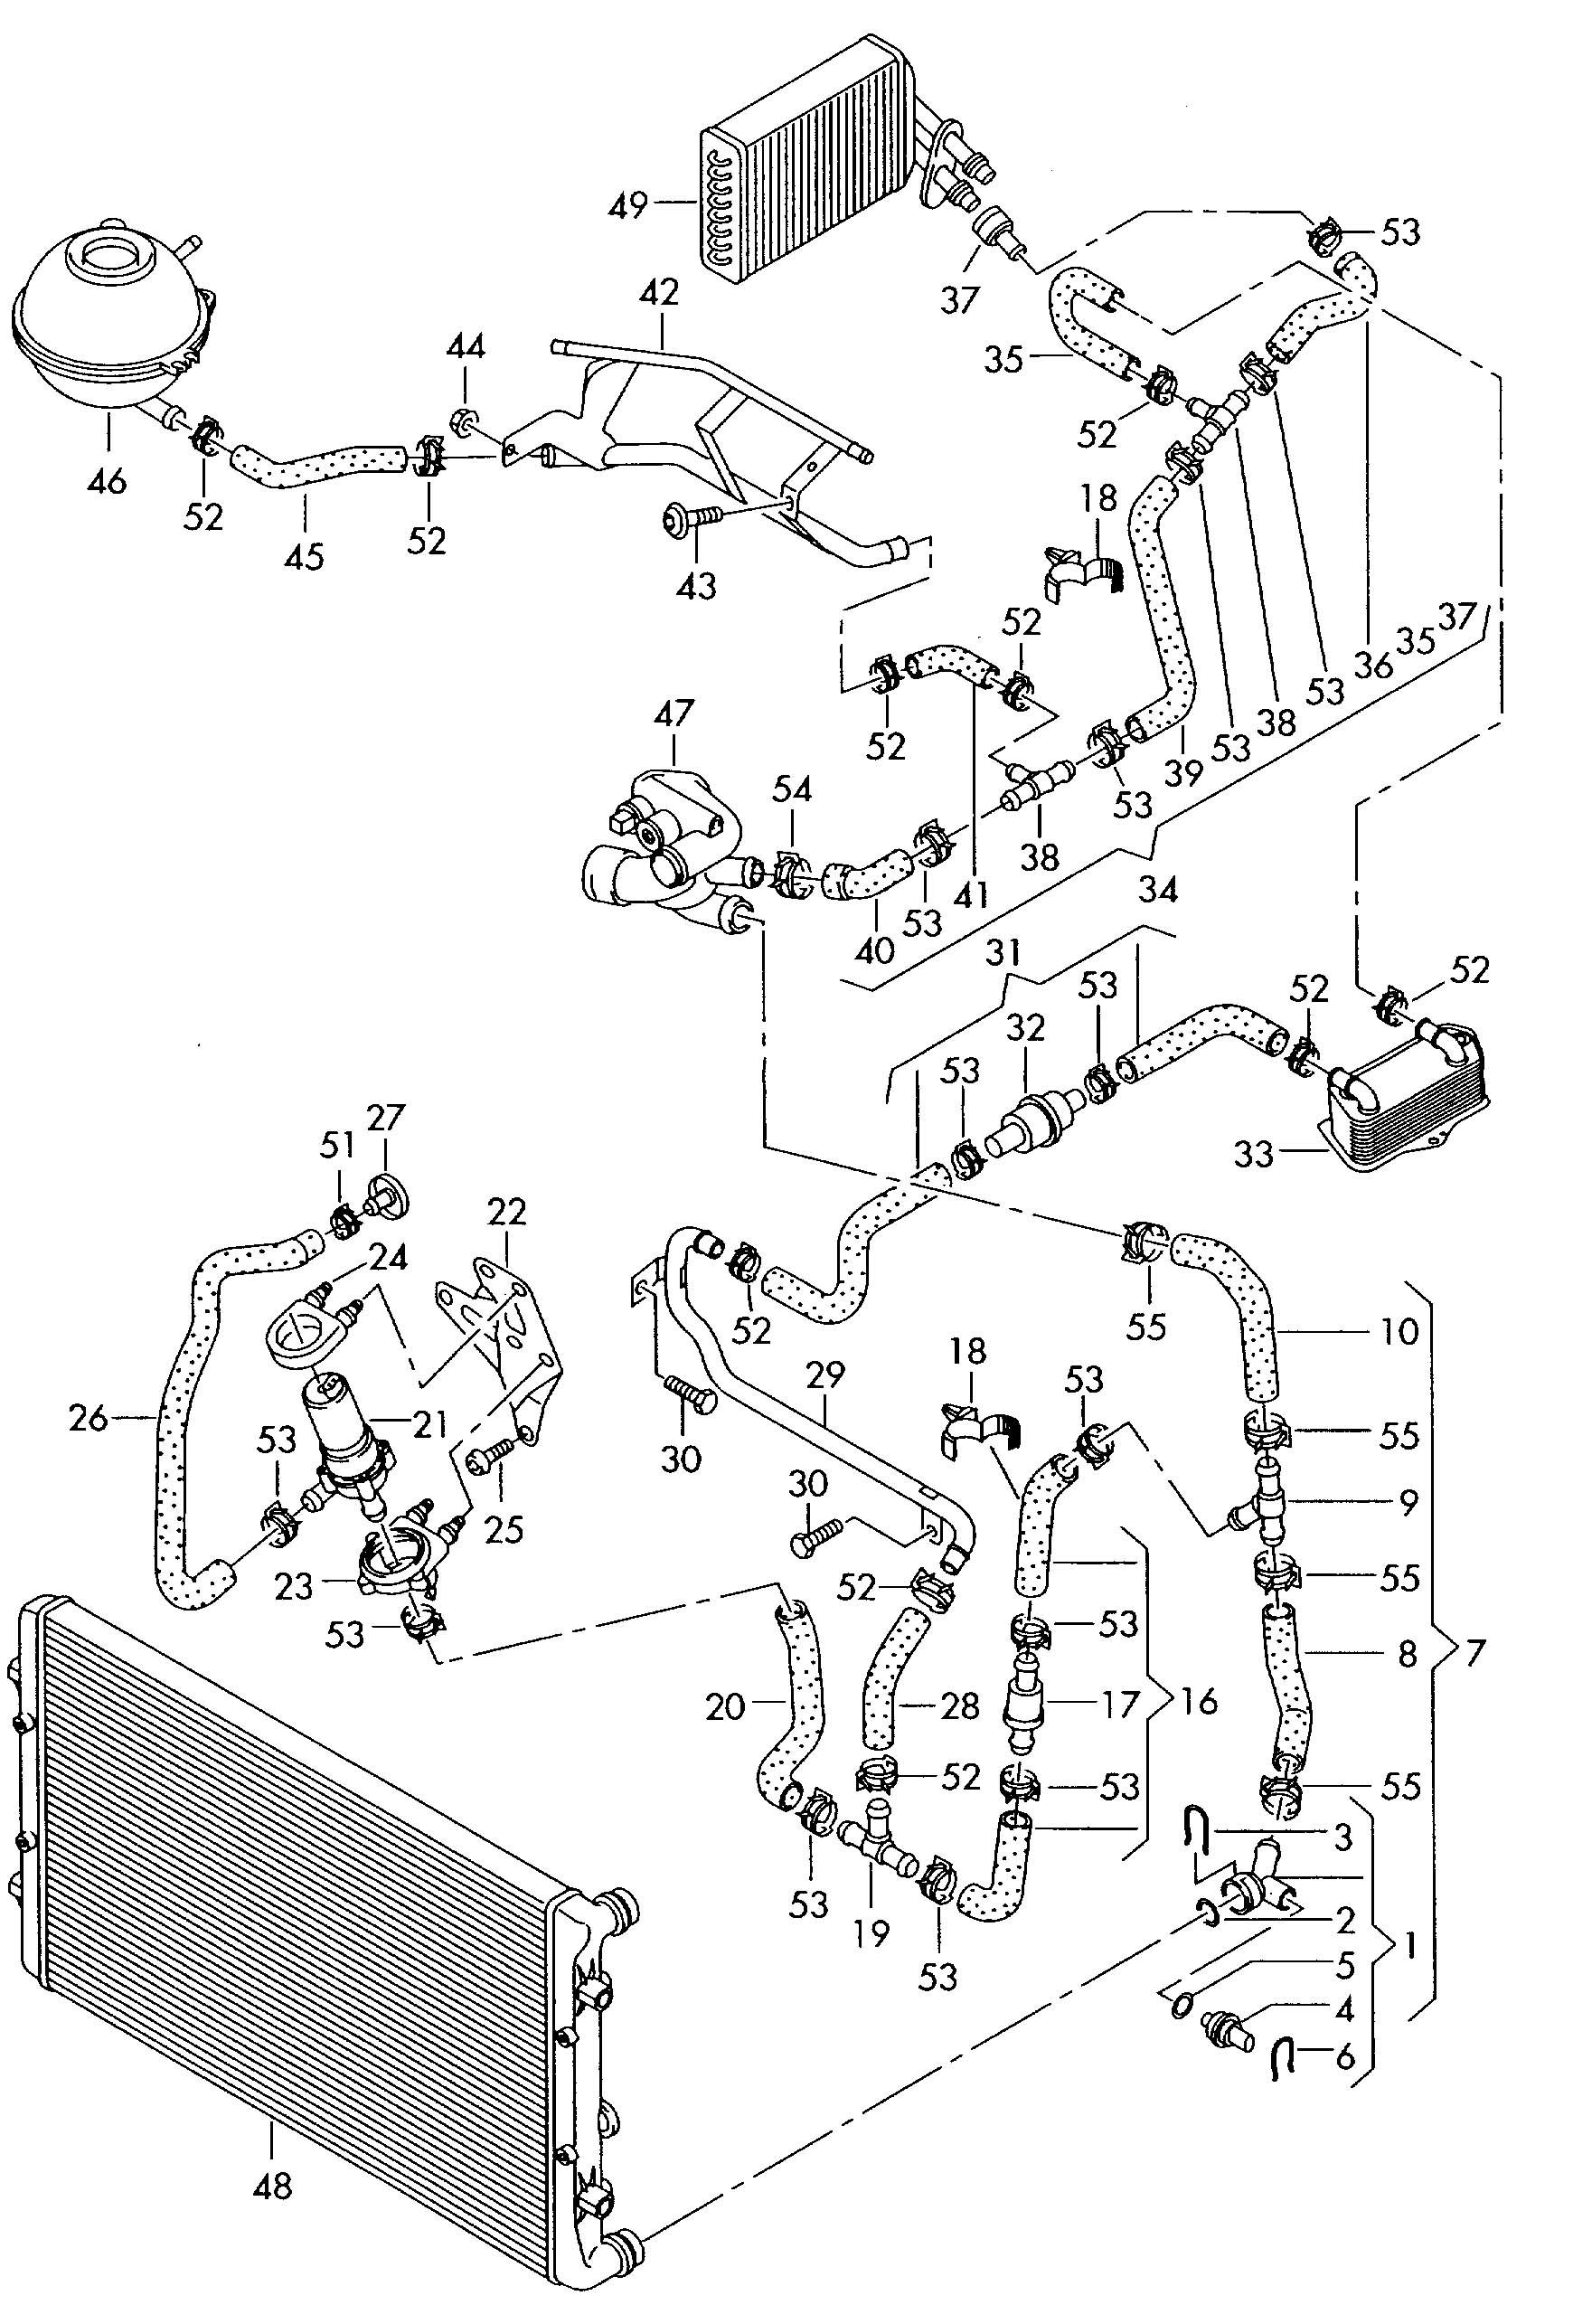 Audi A3 Cooling System Diagram | Audi | Audi a3, Audi, Cooling system